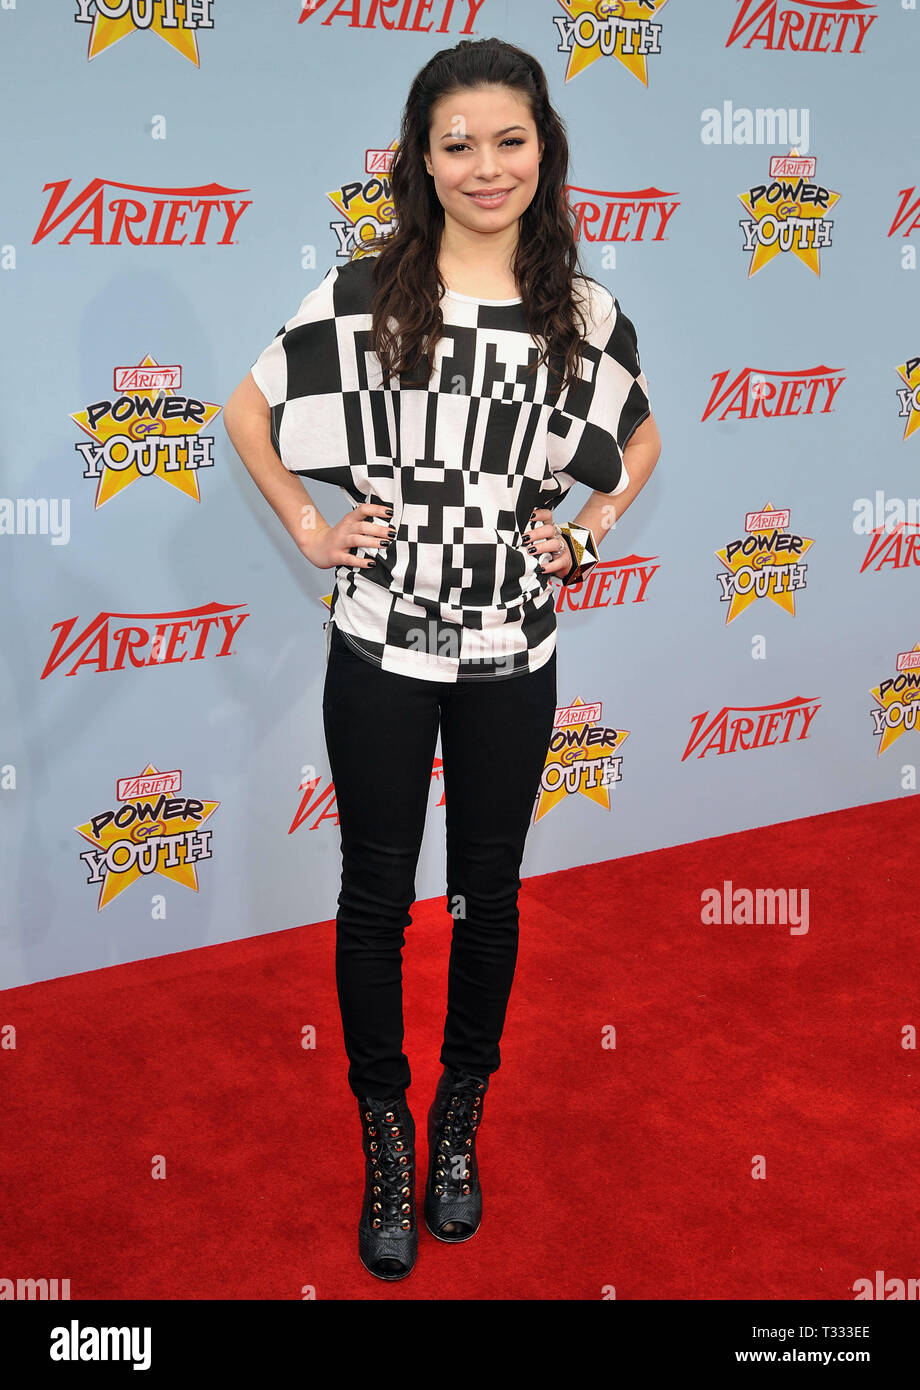 Miranda Cosgrove_06 - Power Of Youth Event on the Paramount Lot In Los Angeles.06_Miranda Cosgrove_06 Red Carpet Event, Vertical, USA, Film Industry, Celebrities,  Photography, Bestof, Arts Culture and Entertainment, Topix Celebrities fashion /  Vertical, Best of, Event in Hollywood Life - California,  Red Carpet and backstage, USA, Film Industry, Celebrities,  movie celebrities, TV celebrities, Music celebrities, Photography, Bestof, Arts Culture and Entertainment,  Topix, vertical, one person,, from the year , 2009, inquiry tsuni@Gamma-USA.com Fashion - Full Length - Stock Image